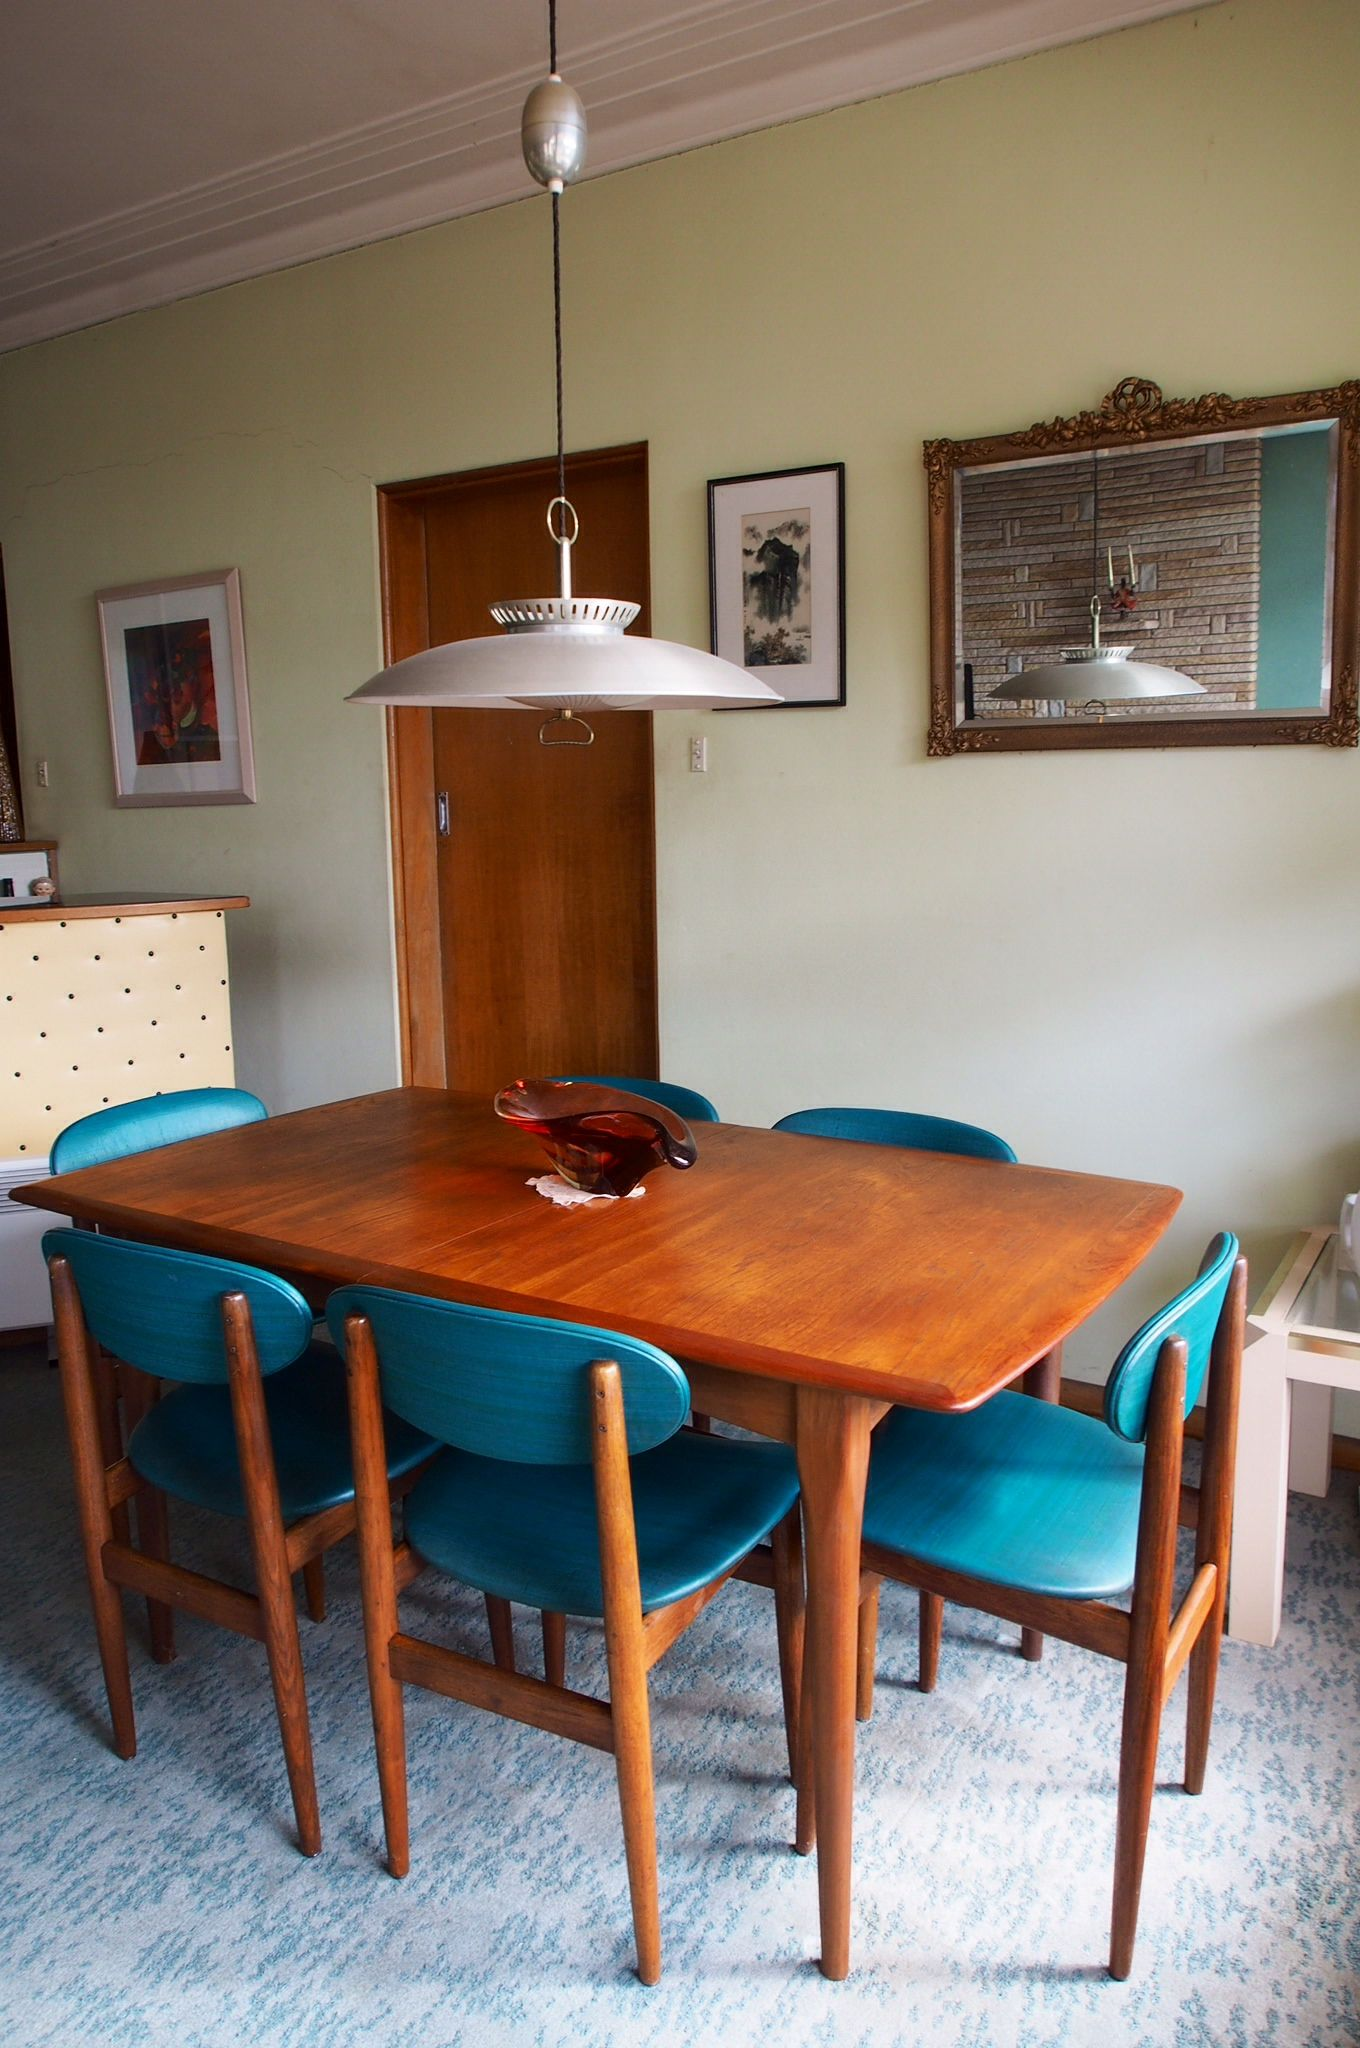 Parker Teak Extendable Table And Six Chairs Not But Australian Made Covered In Teal Vinyl Hanging Light 1959 60